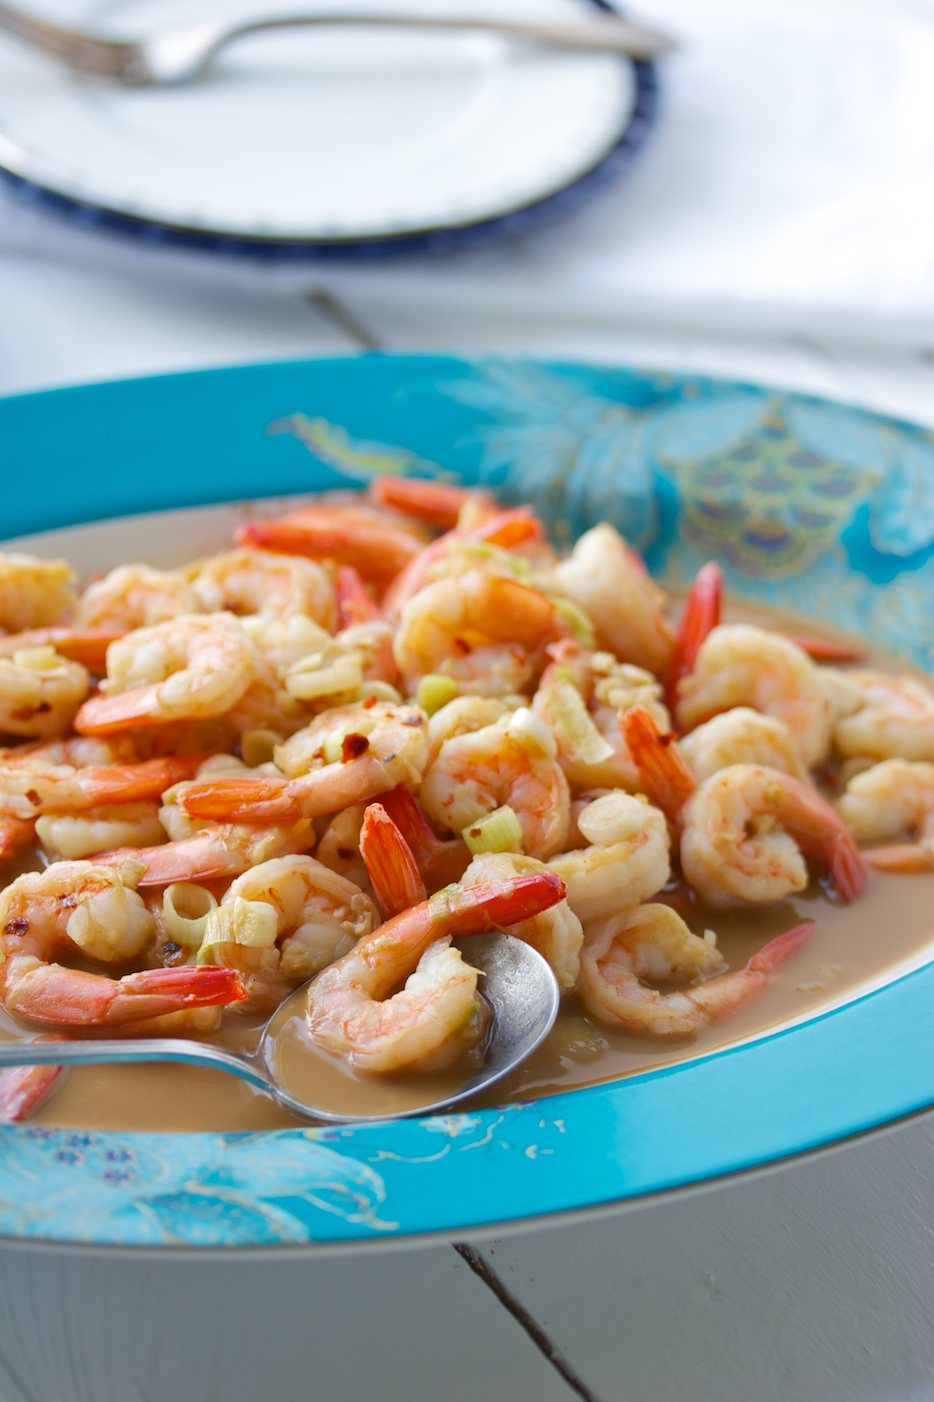 movita's favourite shrimp | movita beaucoup